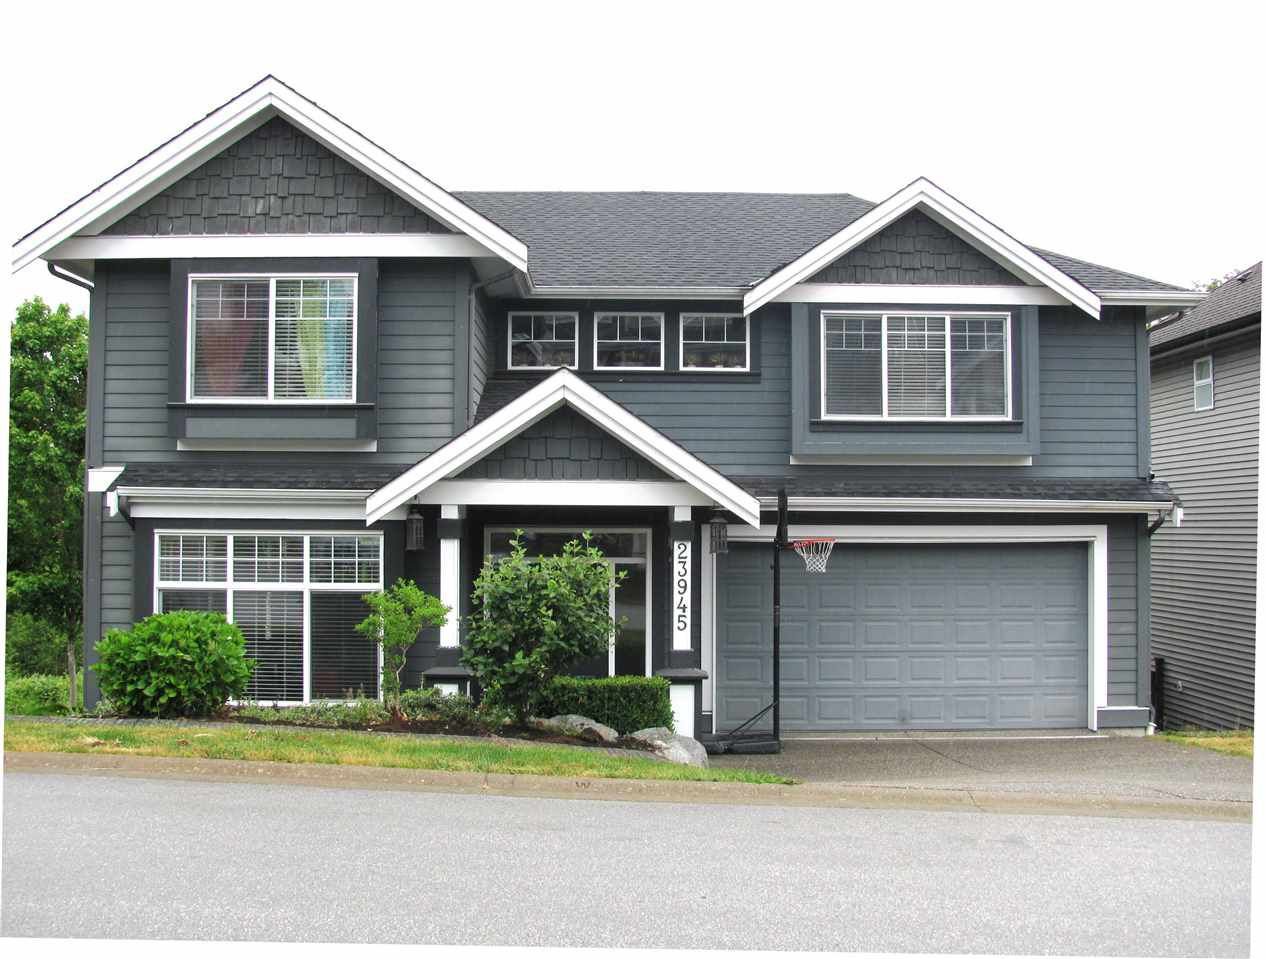 Main Photo: 23945 107 AVENUE in Maple Ridge: Albion House for sale : MLS®# R2070294